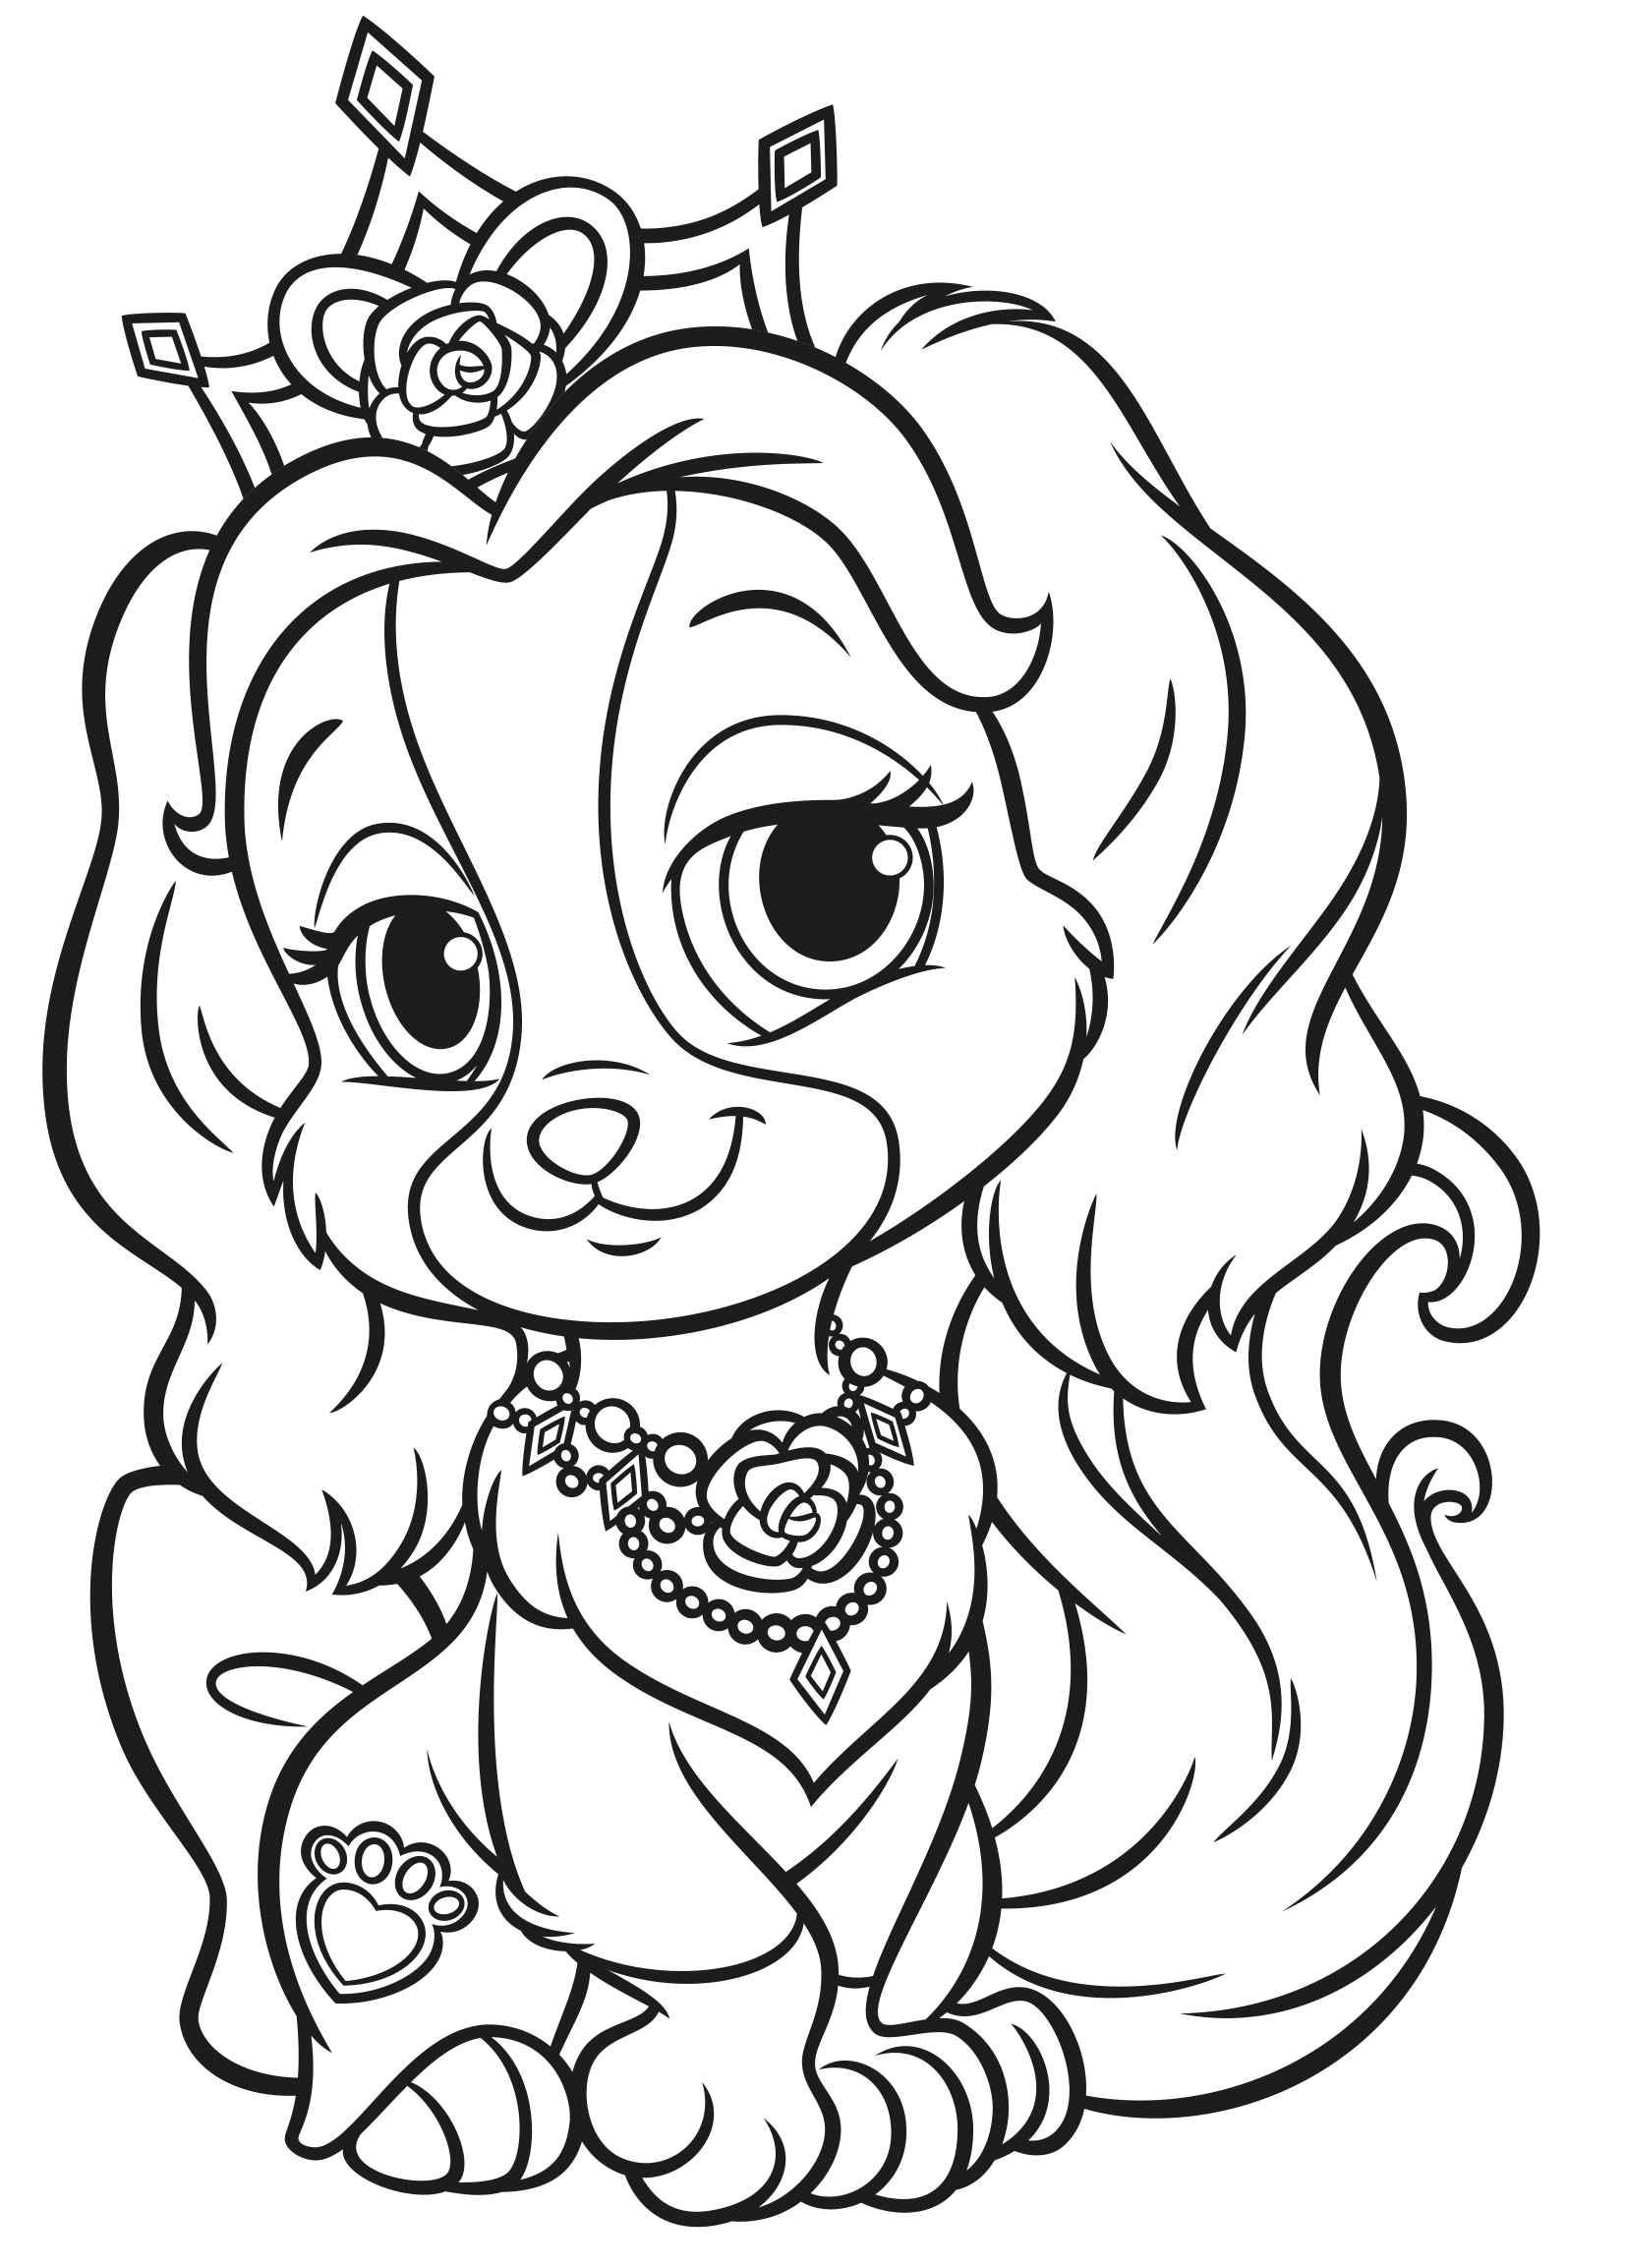 disney pets coloring pages - photo#21